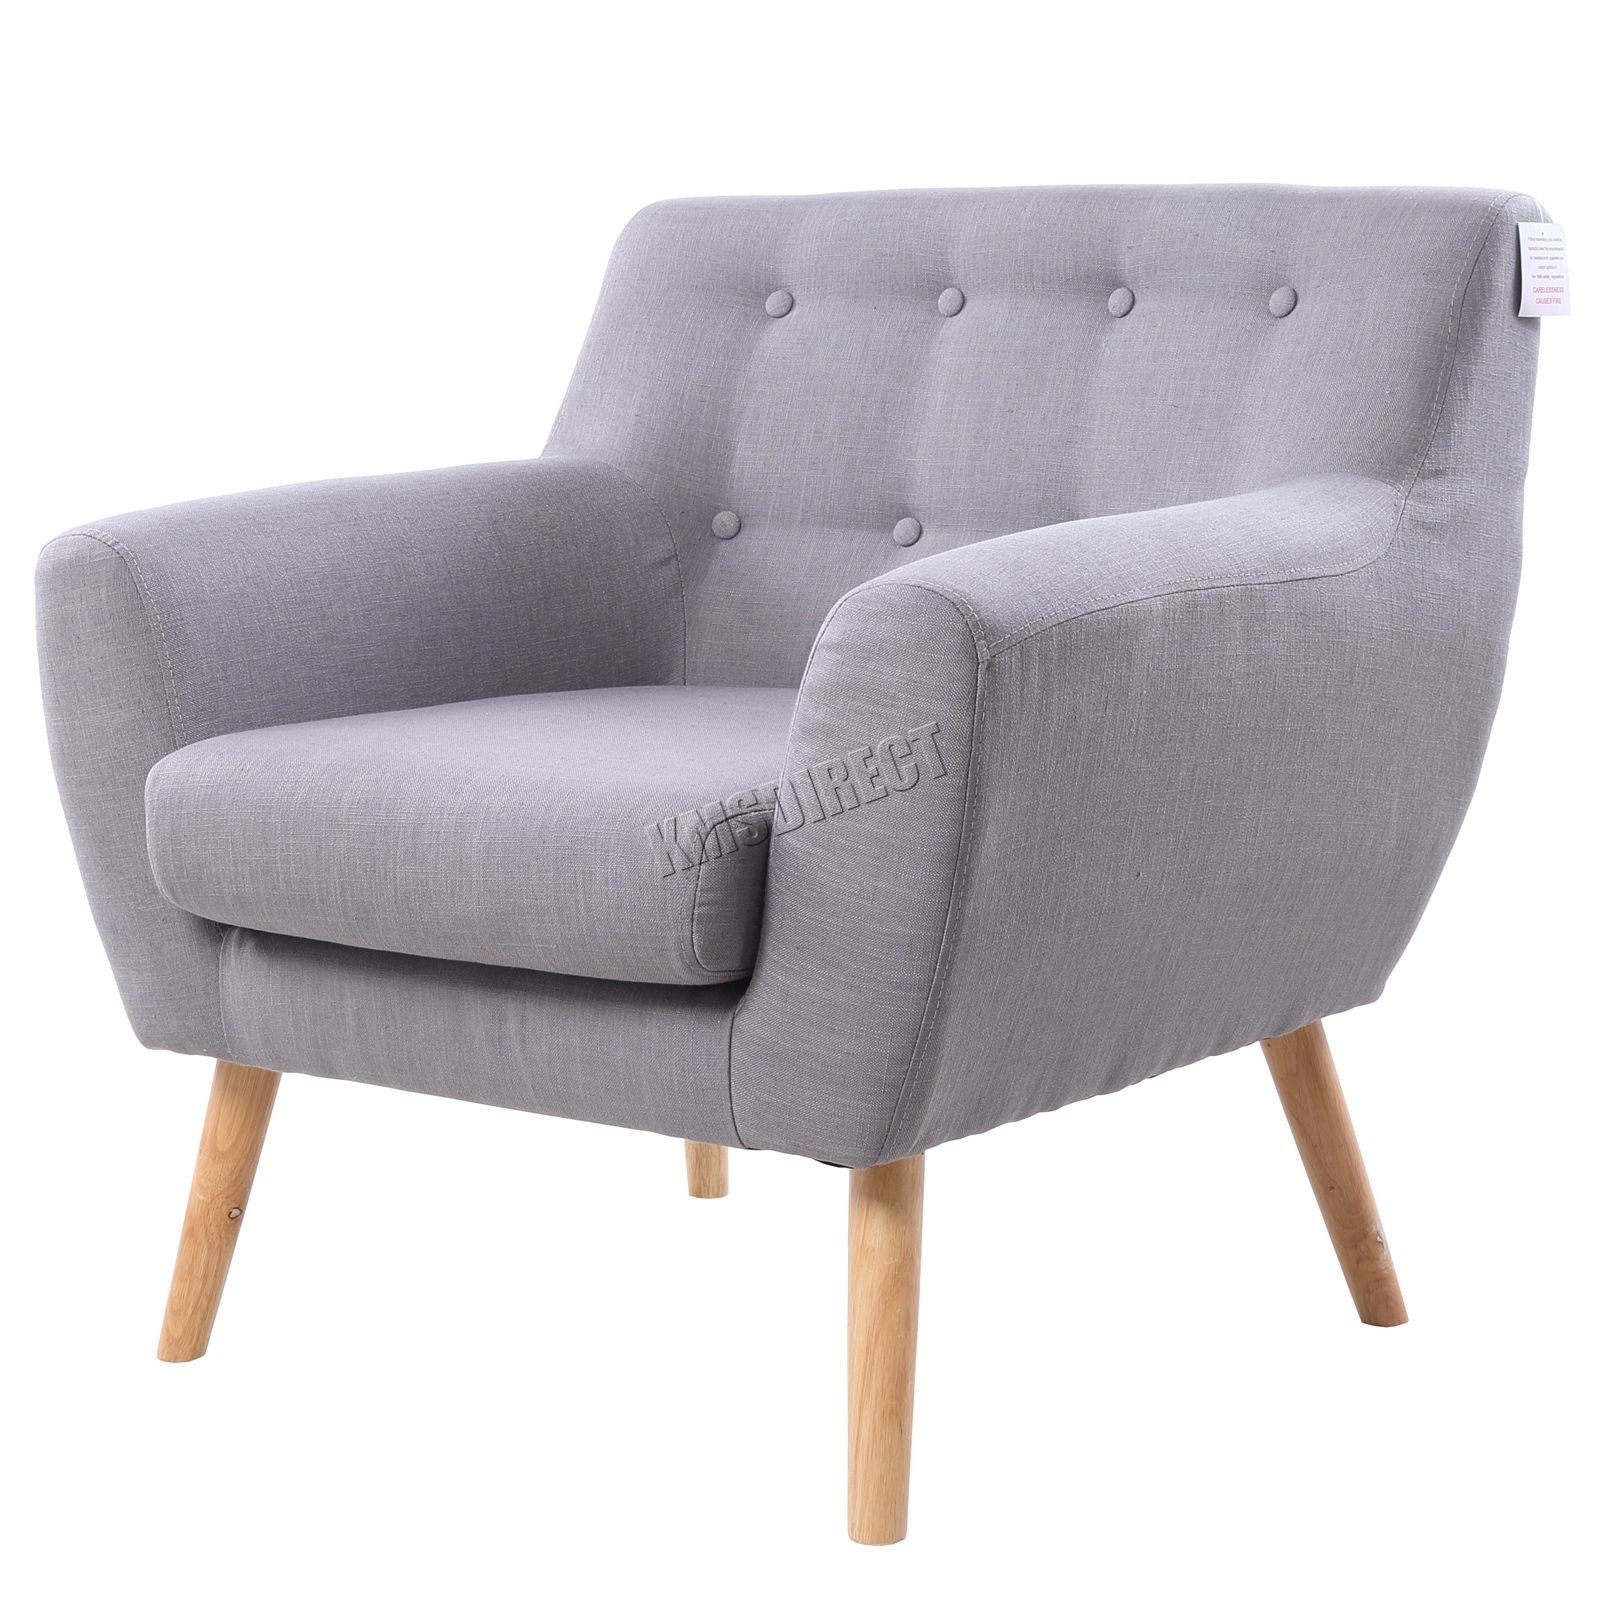 Details about WestWood Linen Fabric 1 Single Seat Sofa Tub